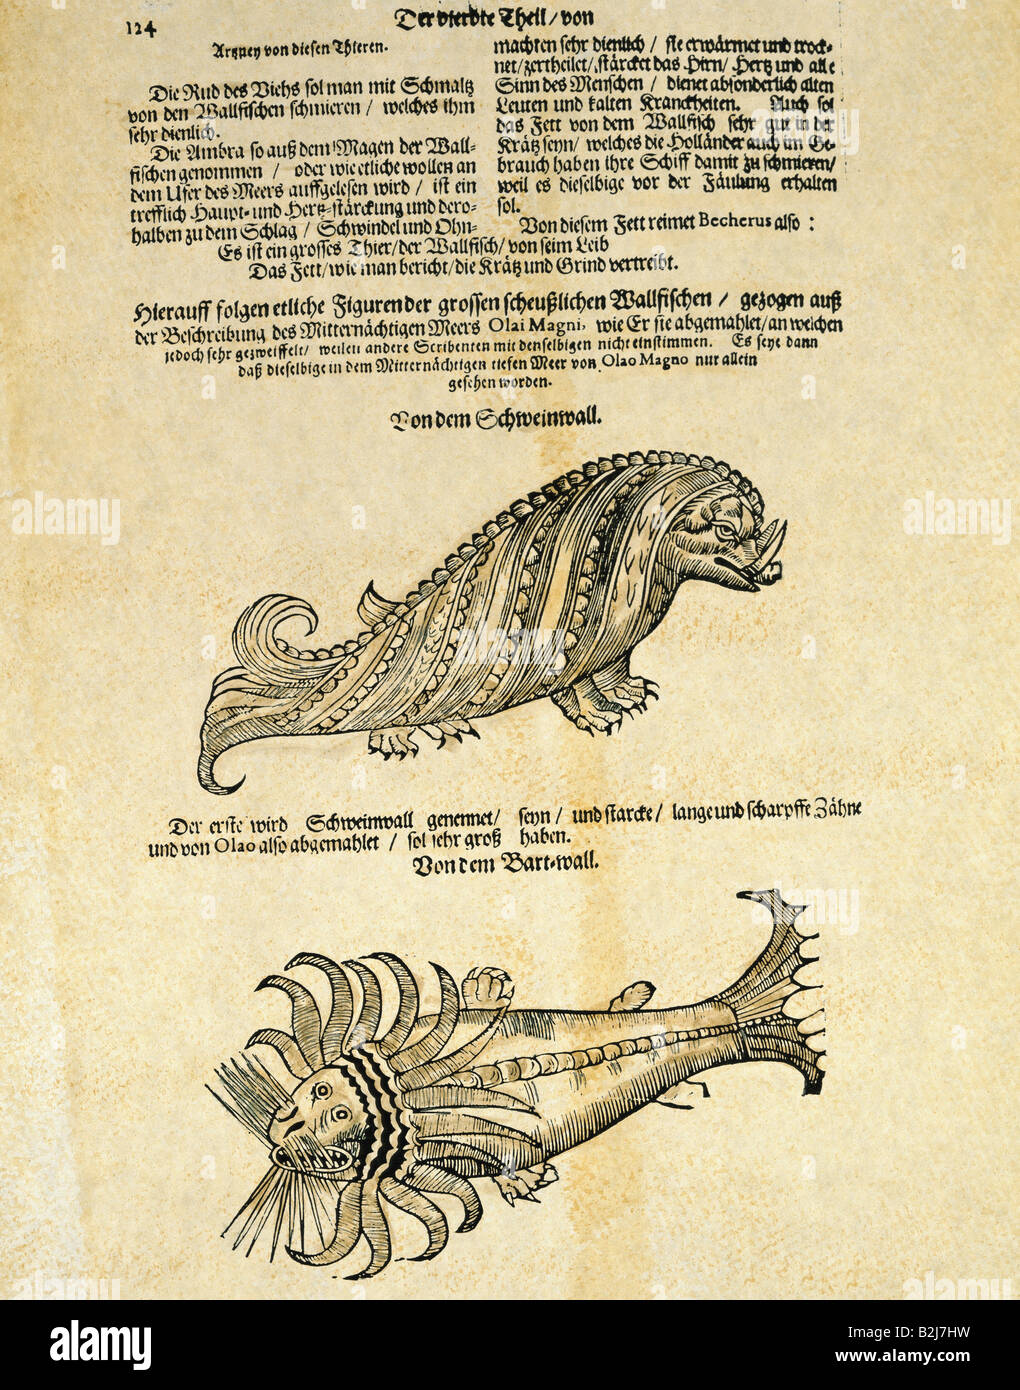 superstition, mythical creatures, hog wale and seal, woodcut, Michael Bernhard Valentini 'Museum museorum', - Stock Image